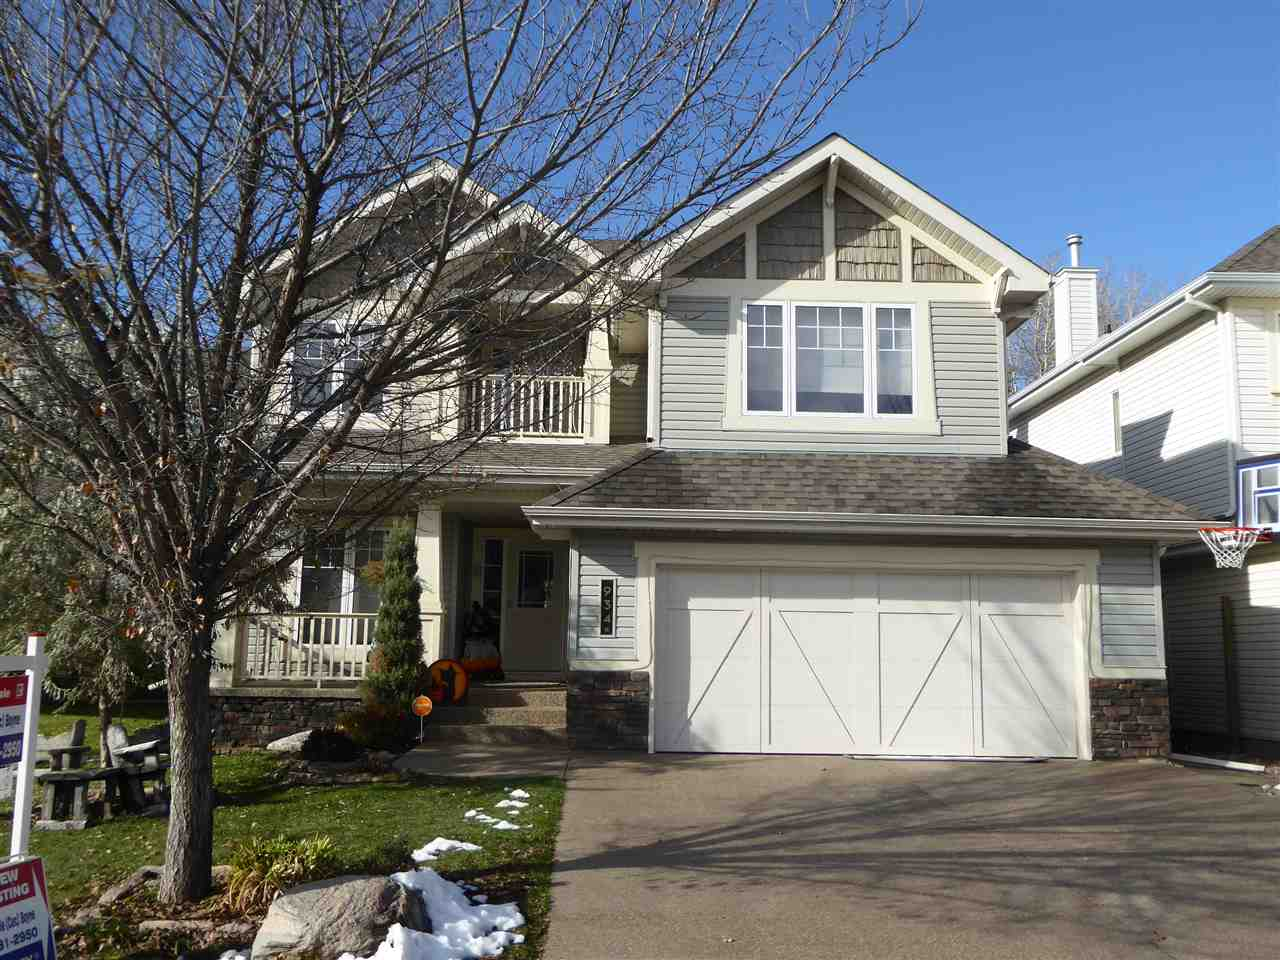 Main Photo: 934 HOPE WY NW in Edmonton: Zone 58 House for sale : MLS(r) # E4041259